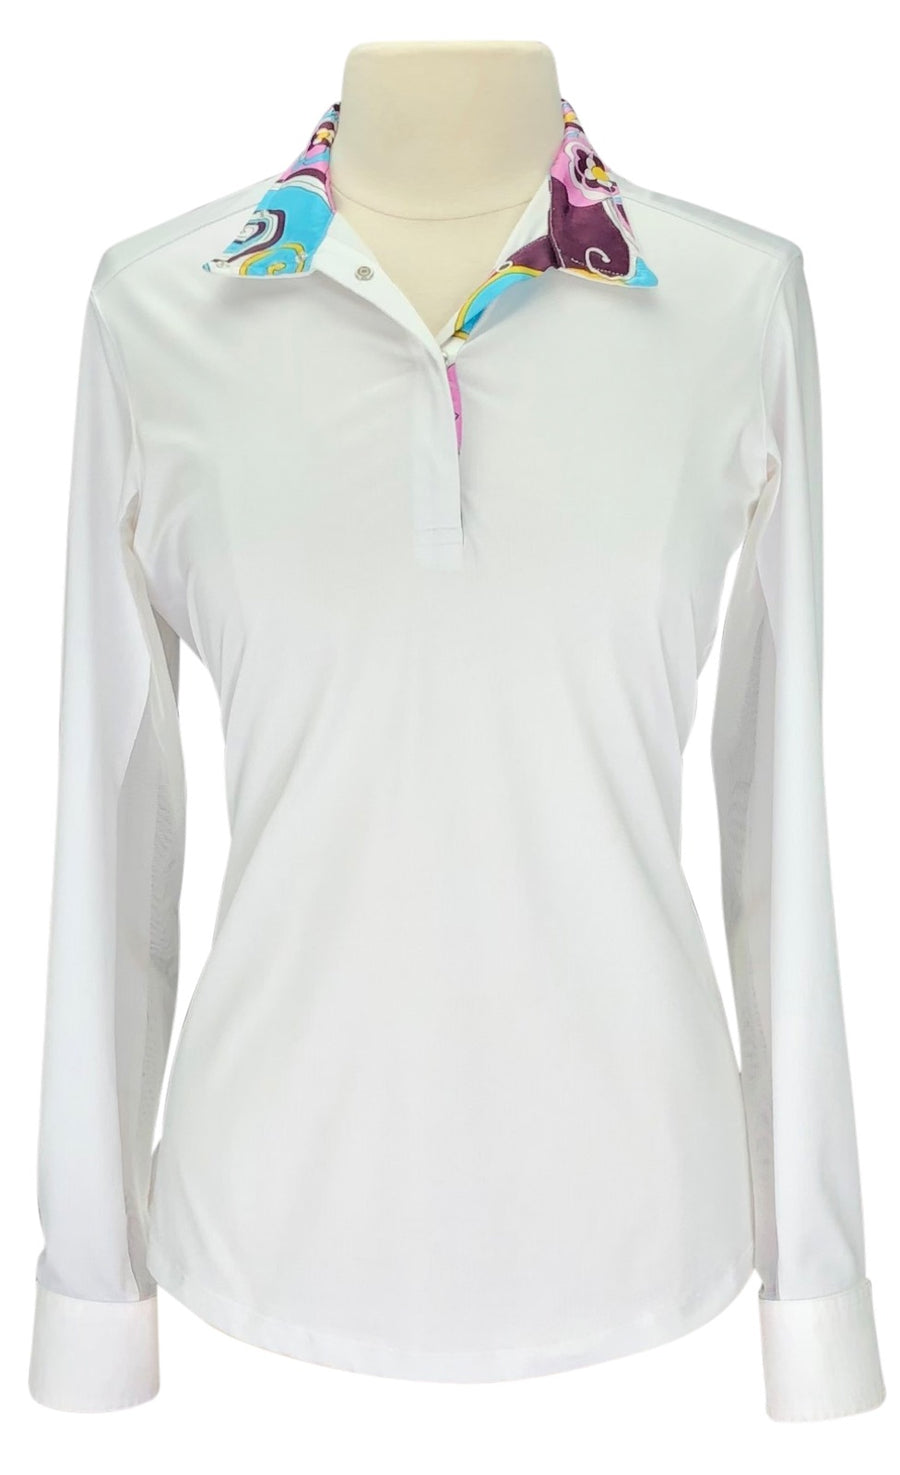 Tailored Sportsman Ice Fil Show Shirt in White and Flower Power